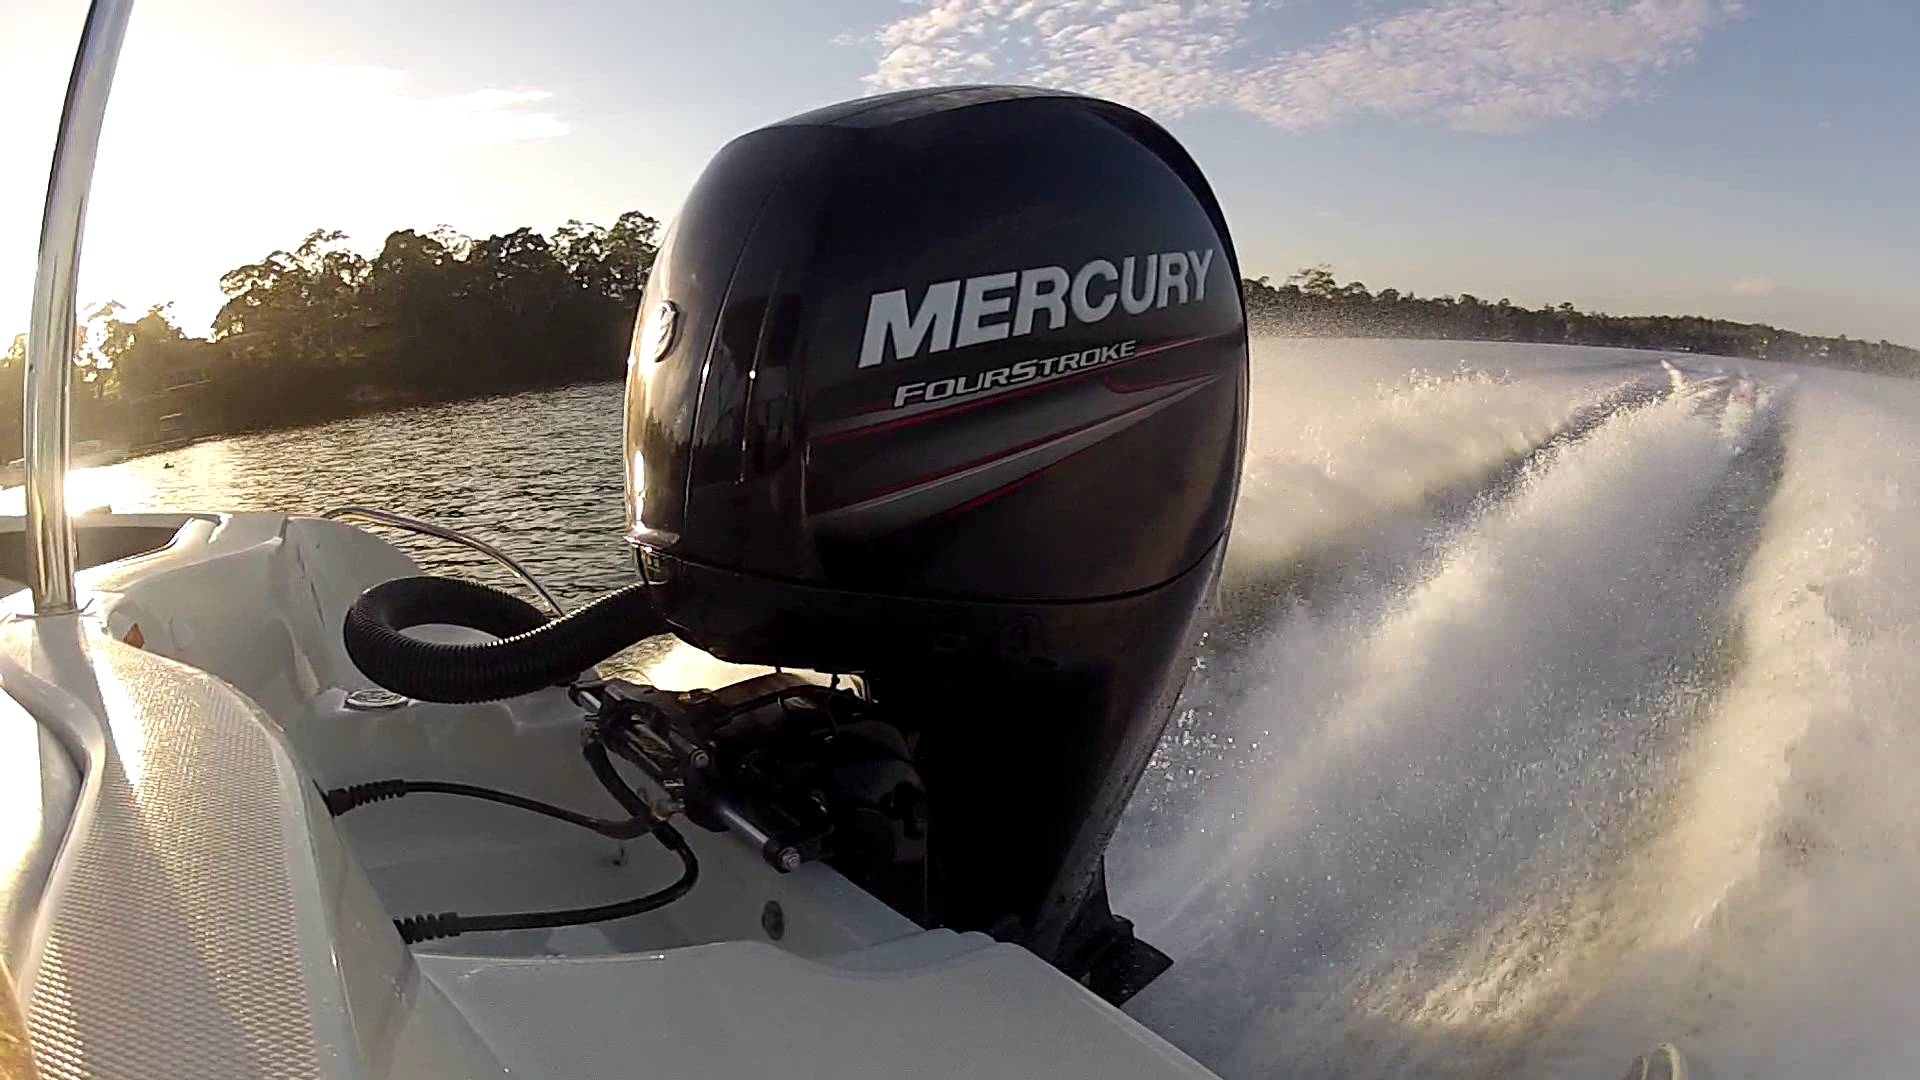 Mercury Outboard Engine Won T Start Troubleshooting Guide